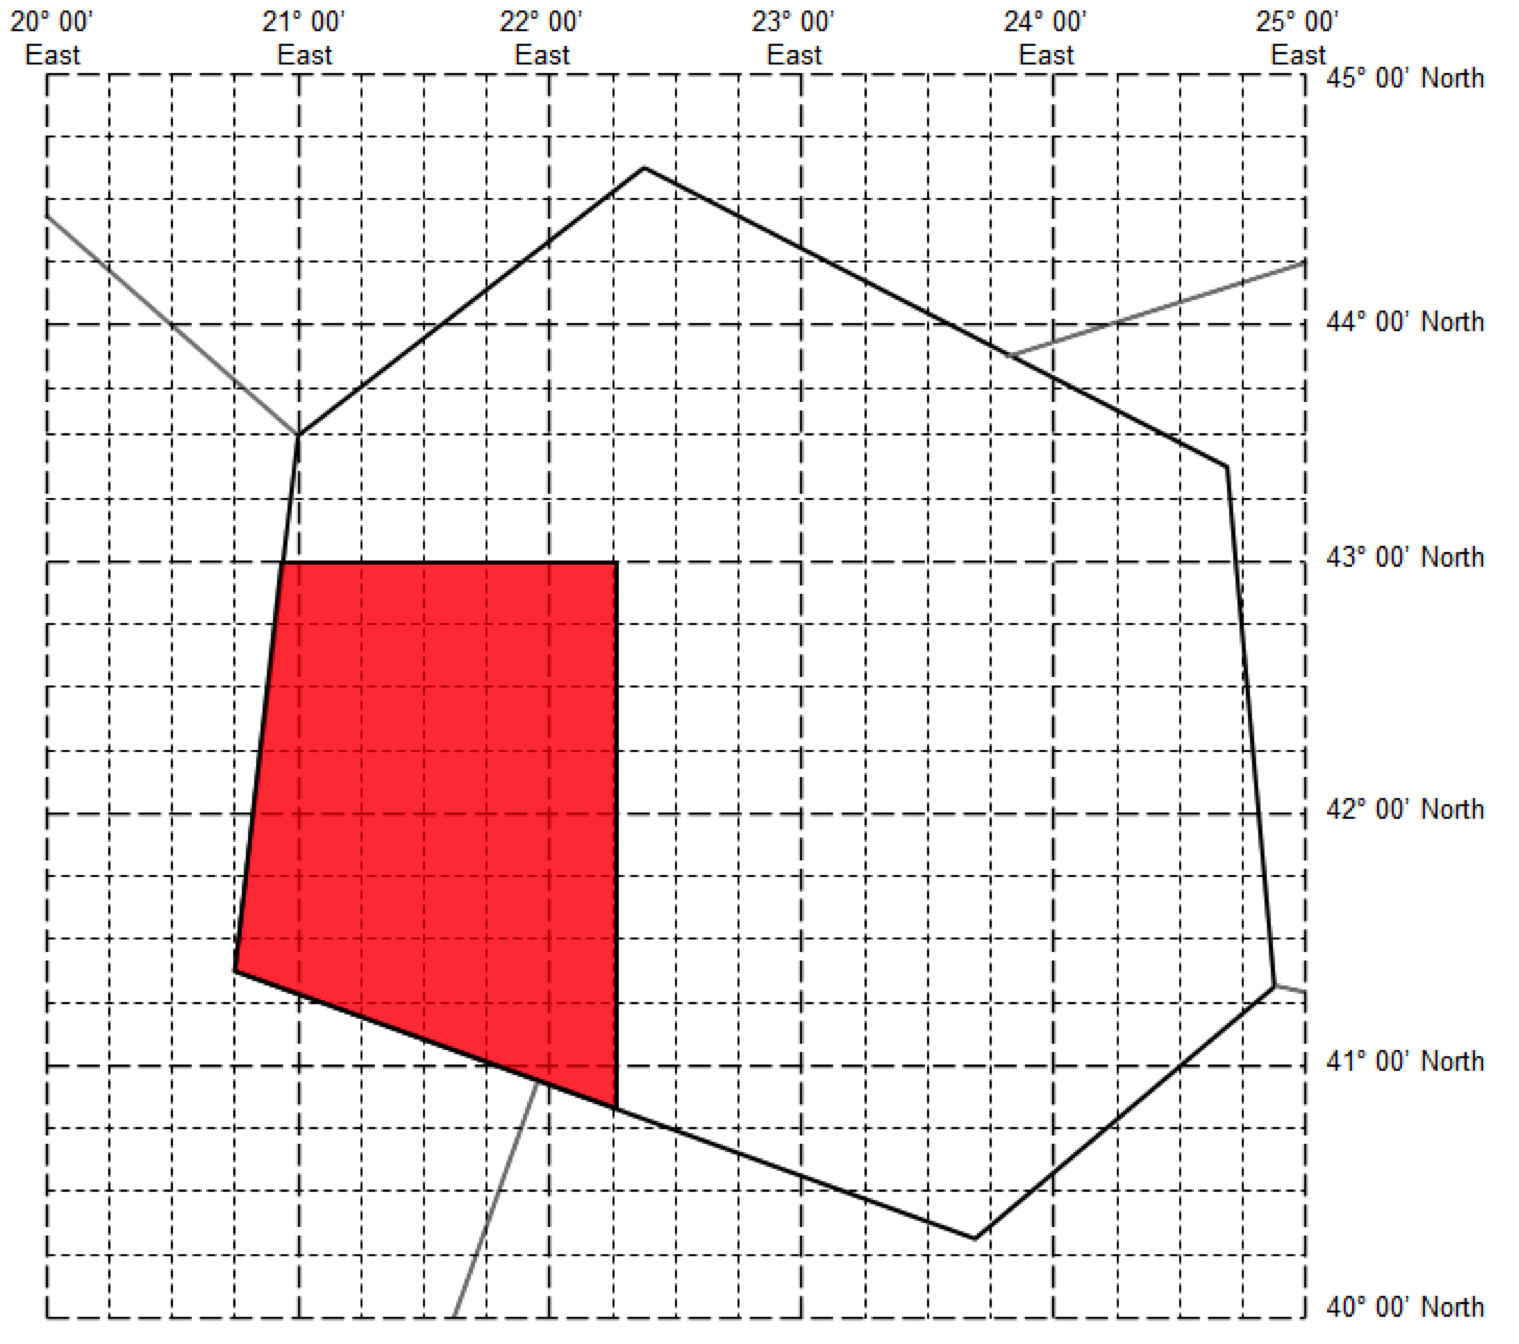 A polygon defined by one line of latitude and one of longitude, clipped to the administrative boundary (FIR).